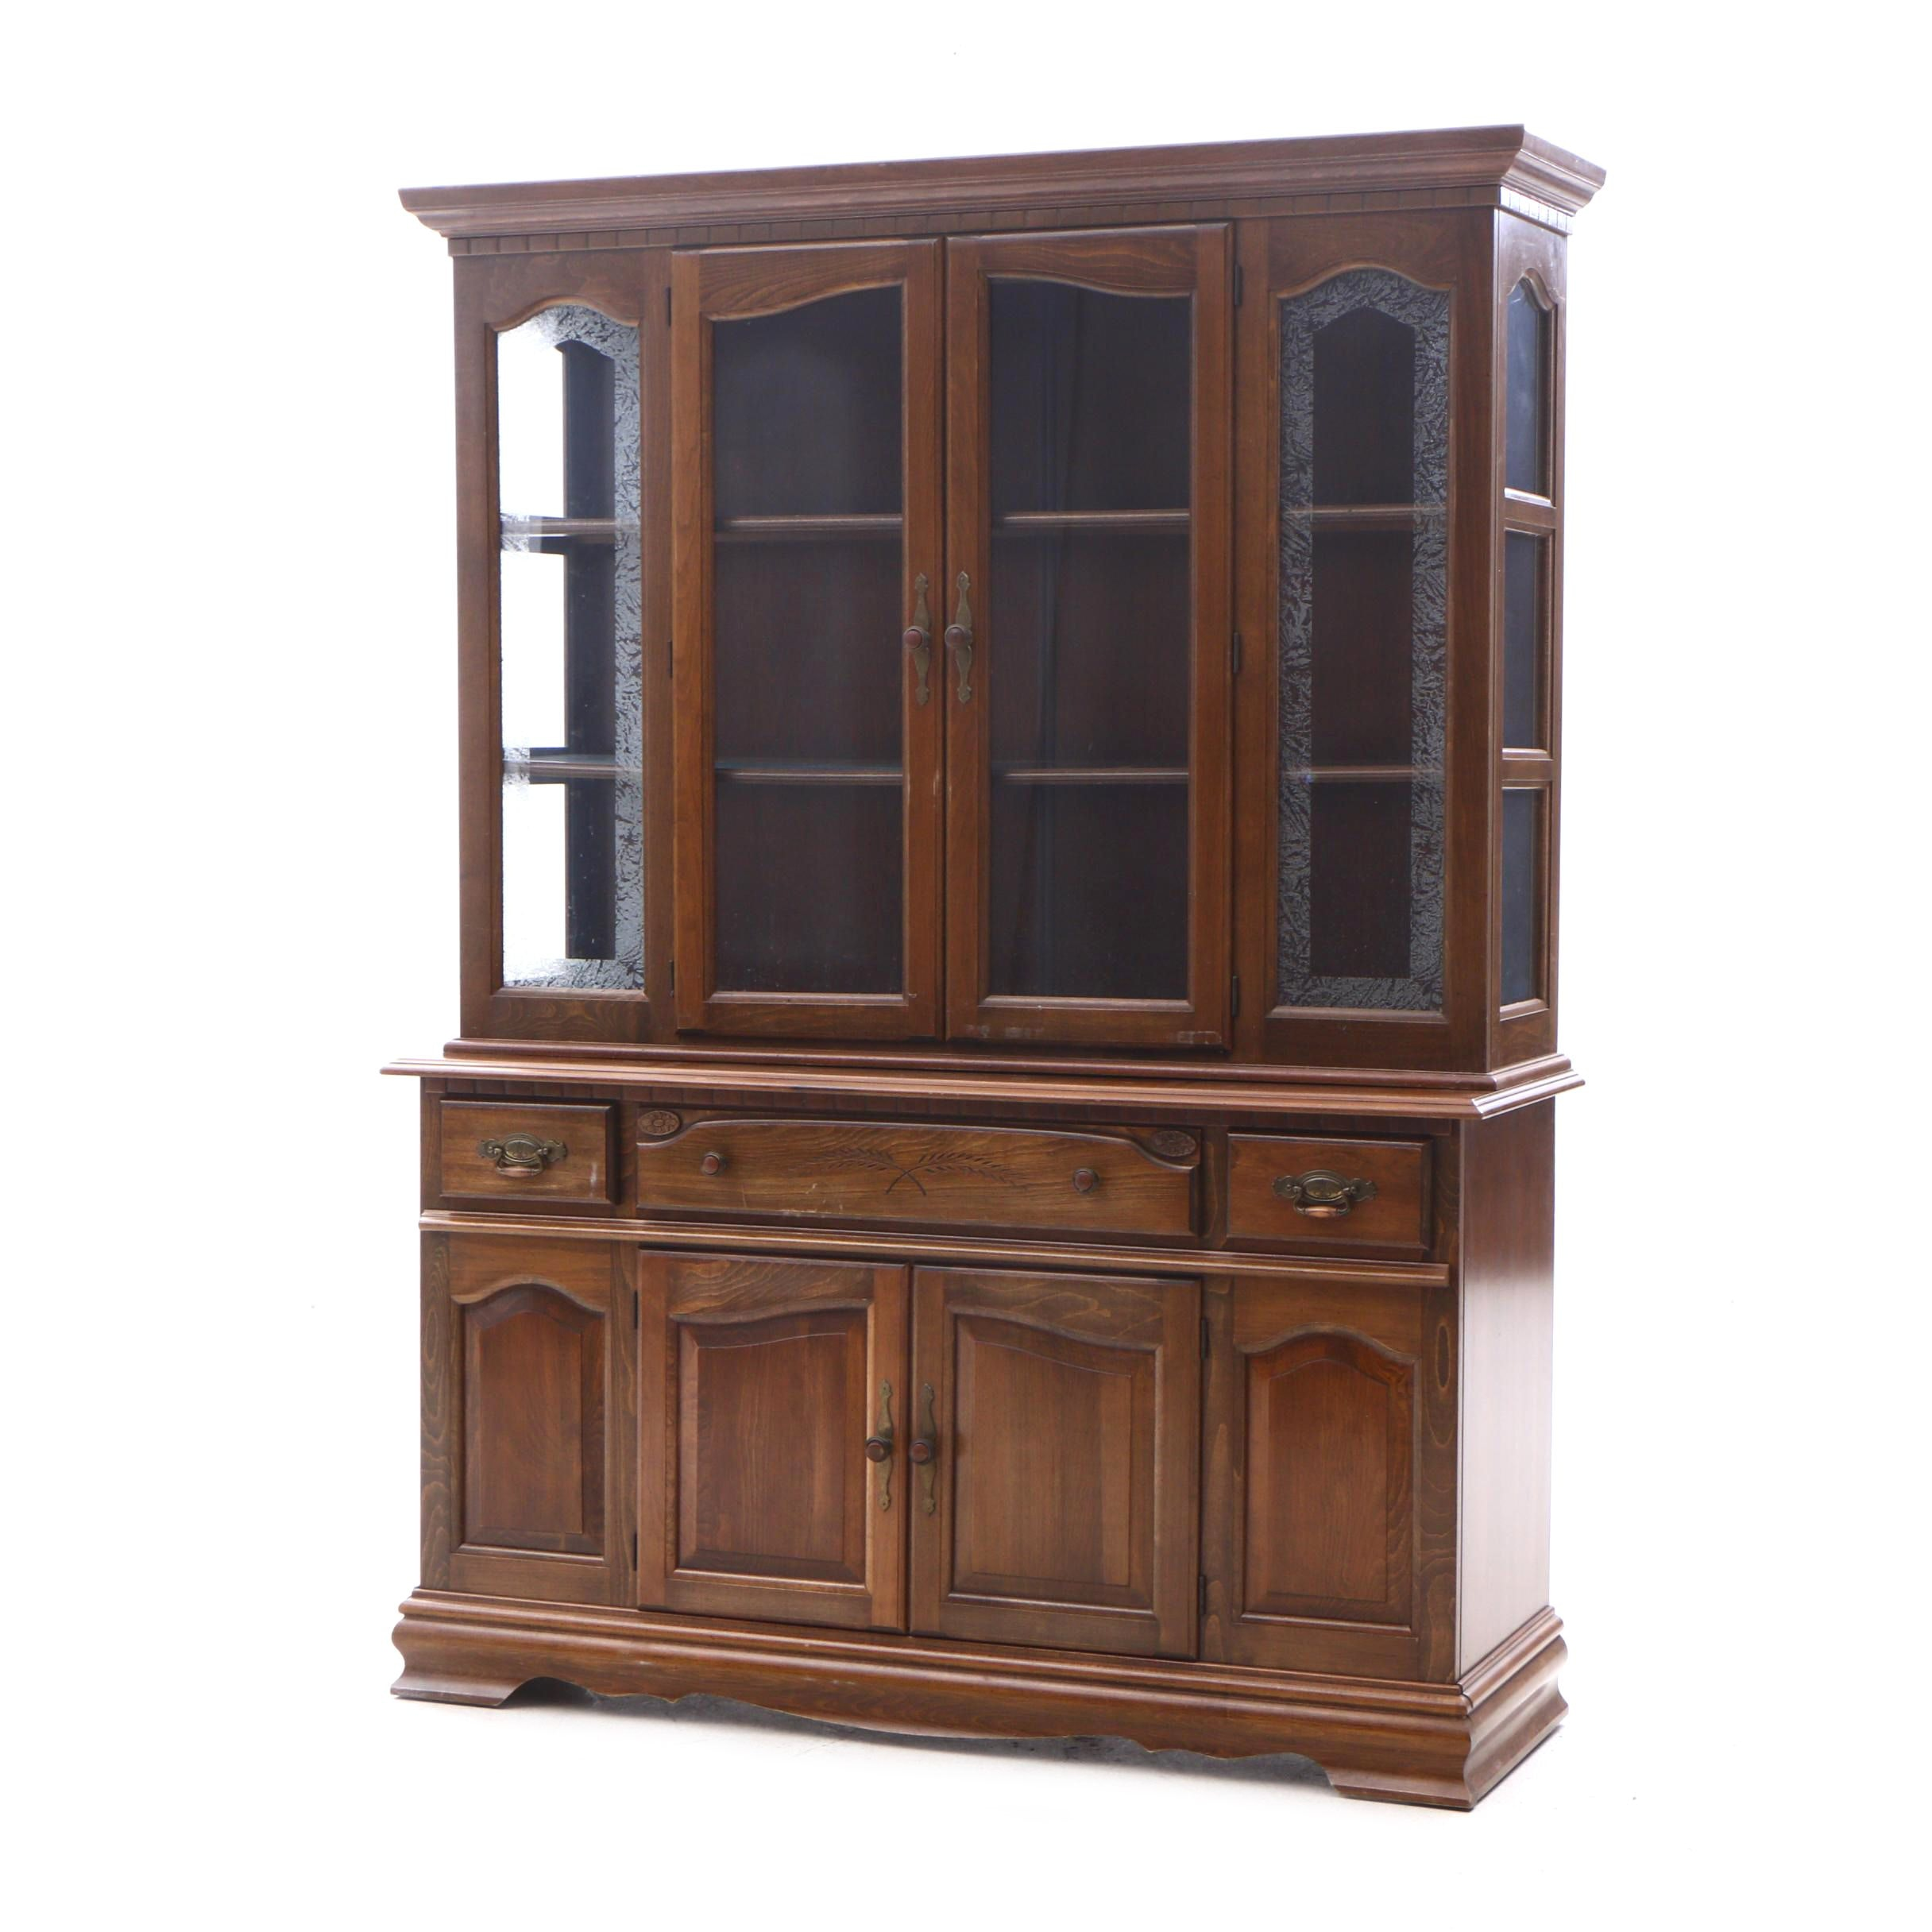 Transitional Style Maple China Cabinet, Late 20th Century